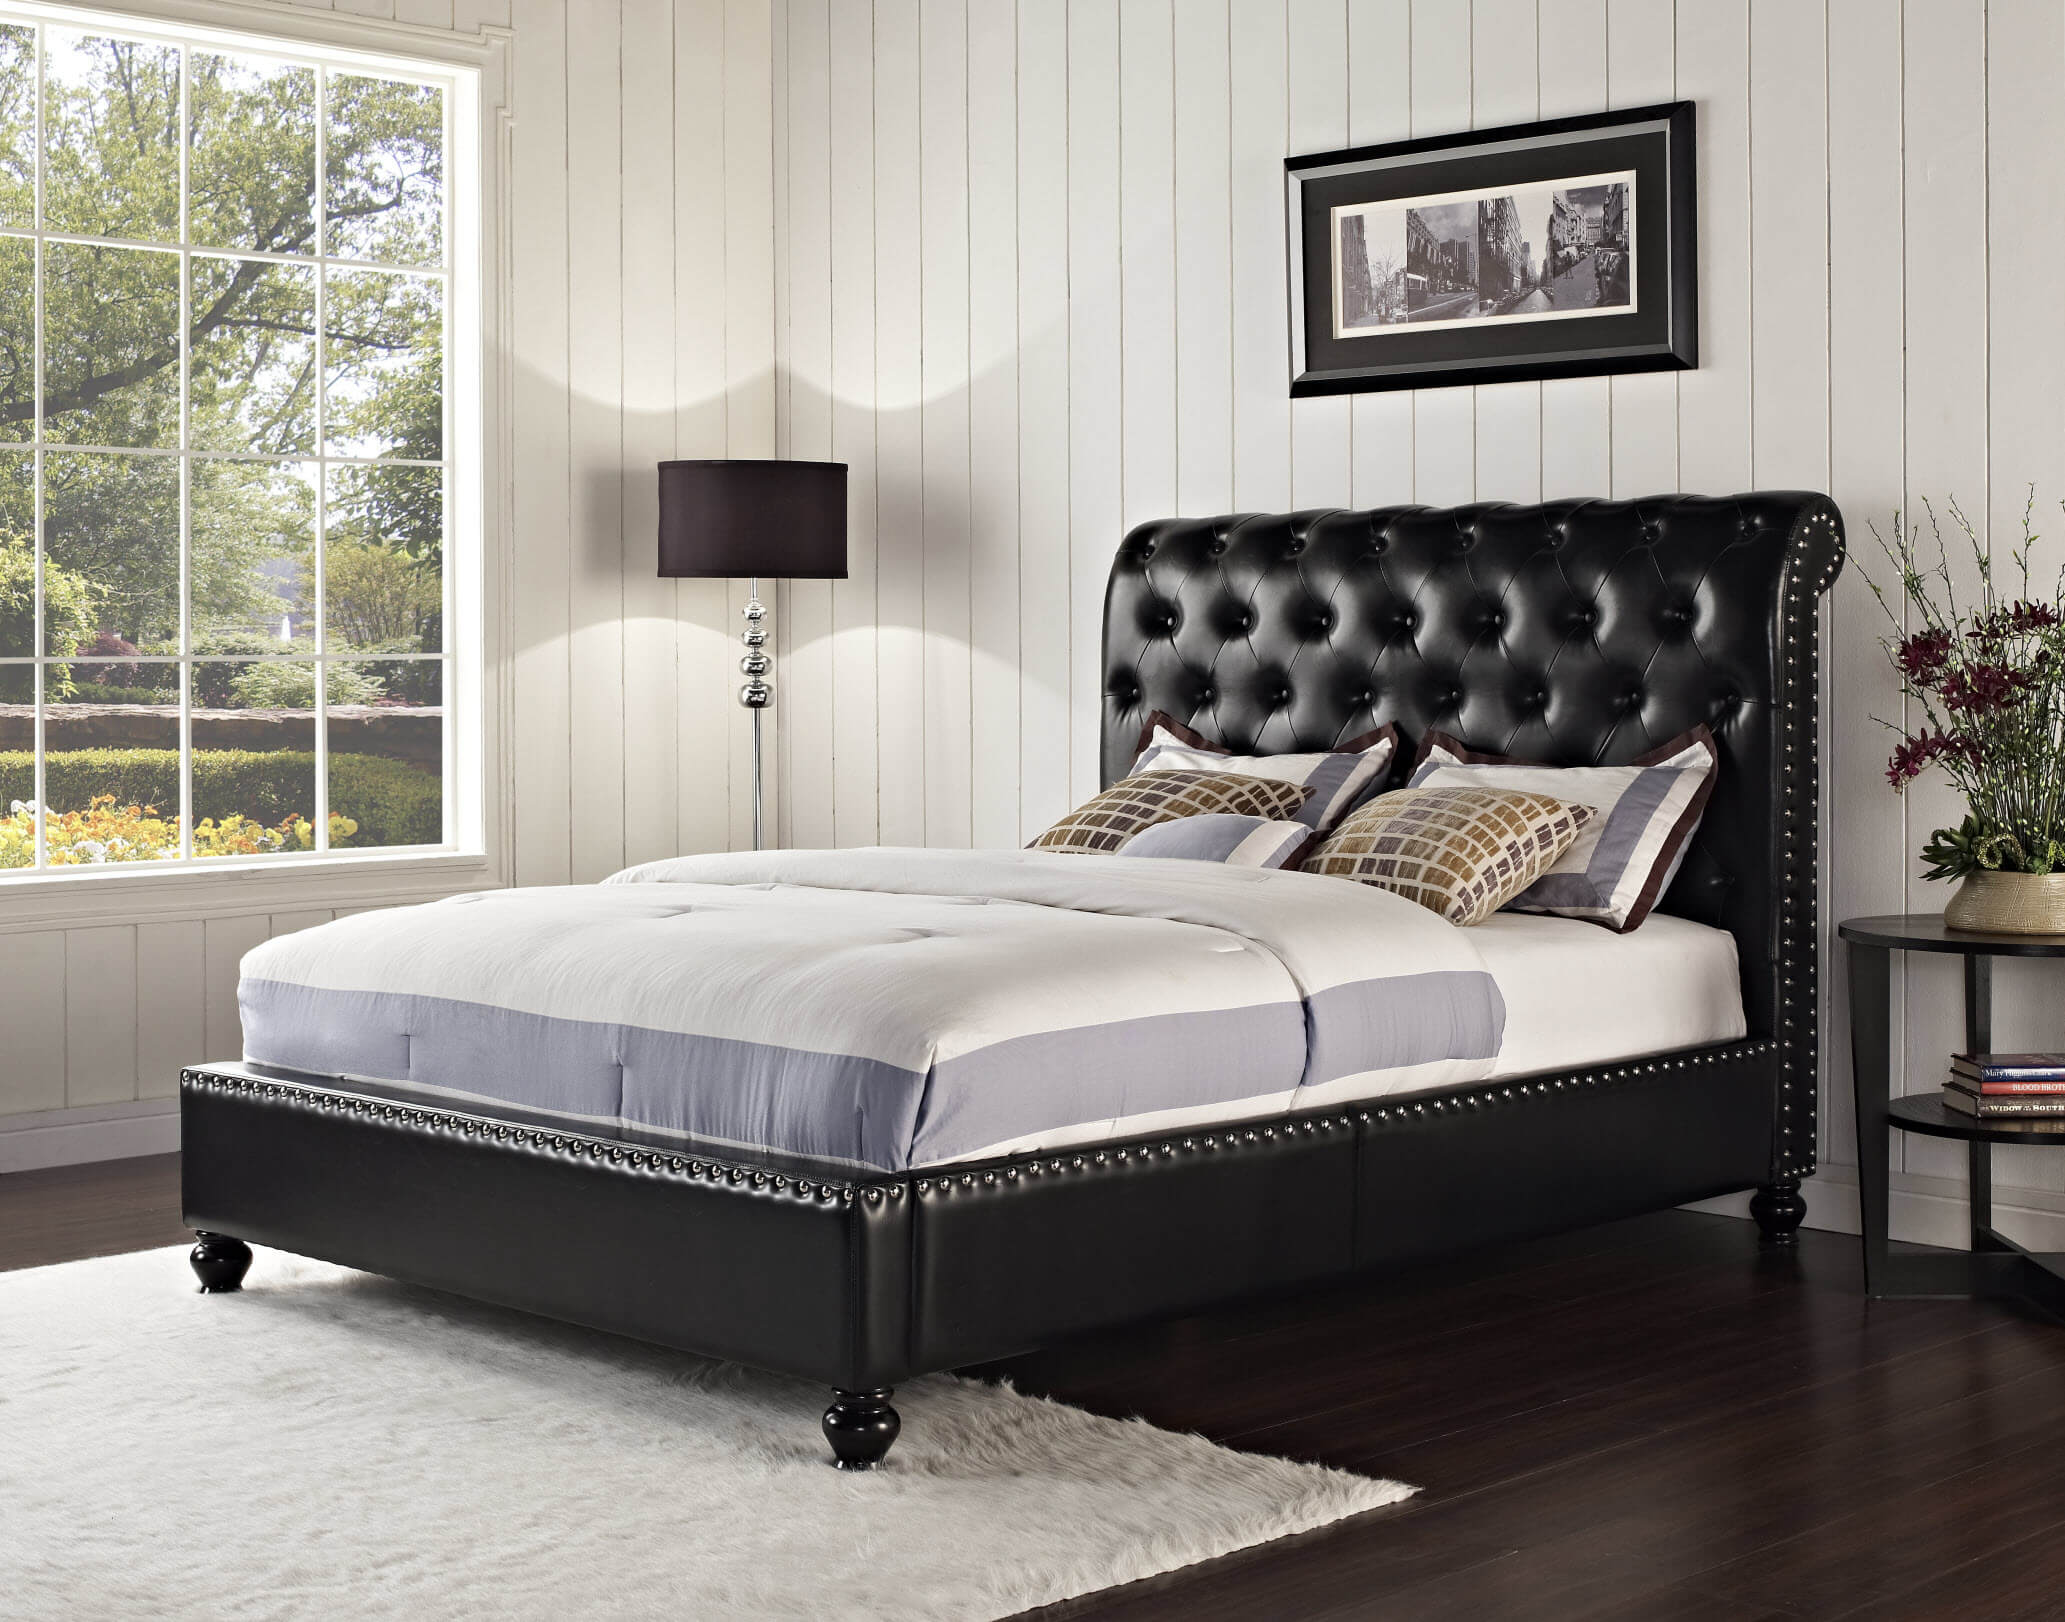 tufted bedroom furniture. Tufted Bedroom Furniture. Standard Black Stanton Bed Furniture I E